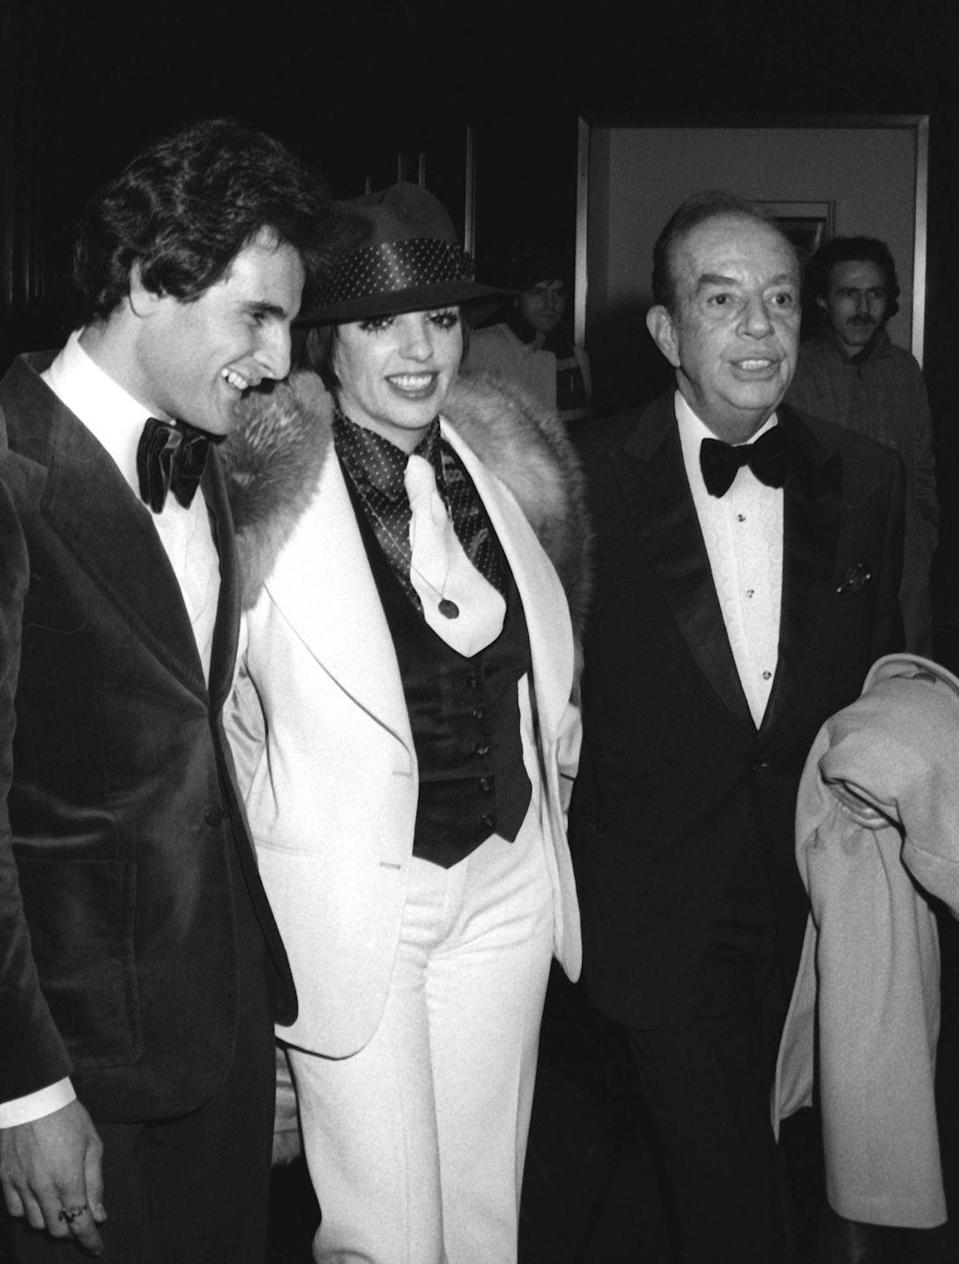 <p>Liza Minnelli and Vincent Minnelli attend the opening party on January 6, 1974 at the Rainbow Room in New York City.</p>